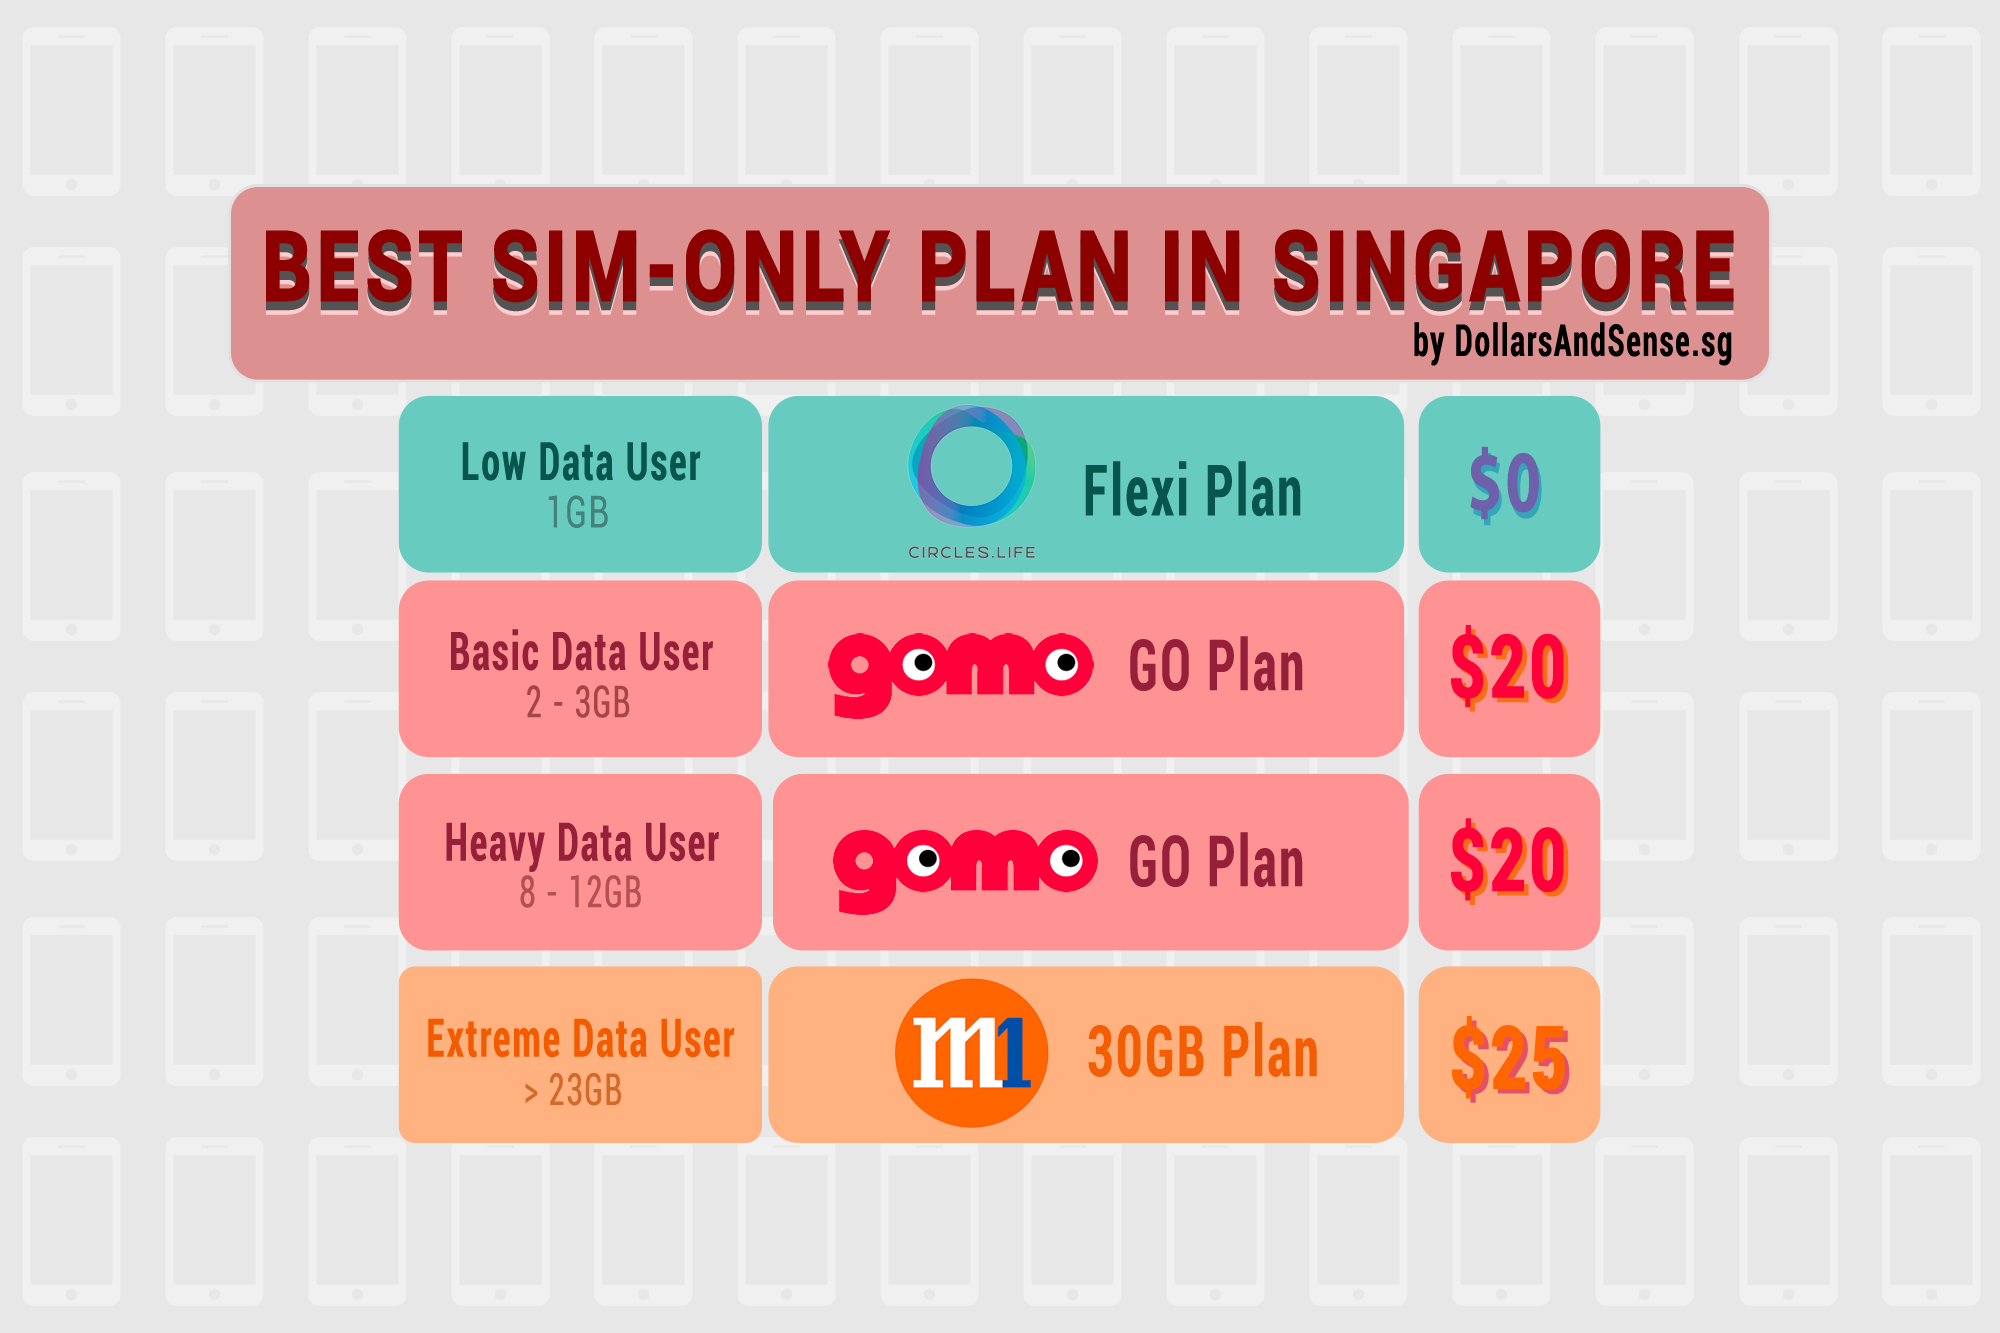 Cheatsheet] What Are The Best SIM-Only Plans In Singapore